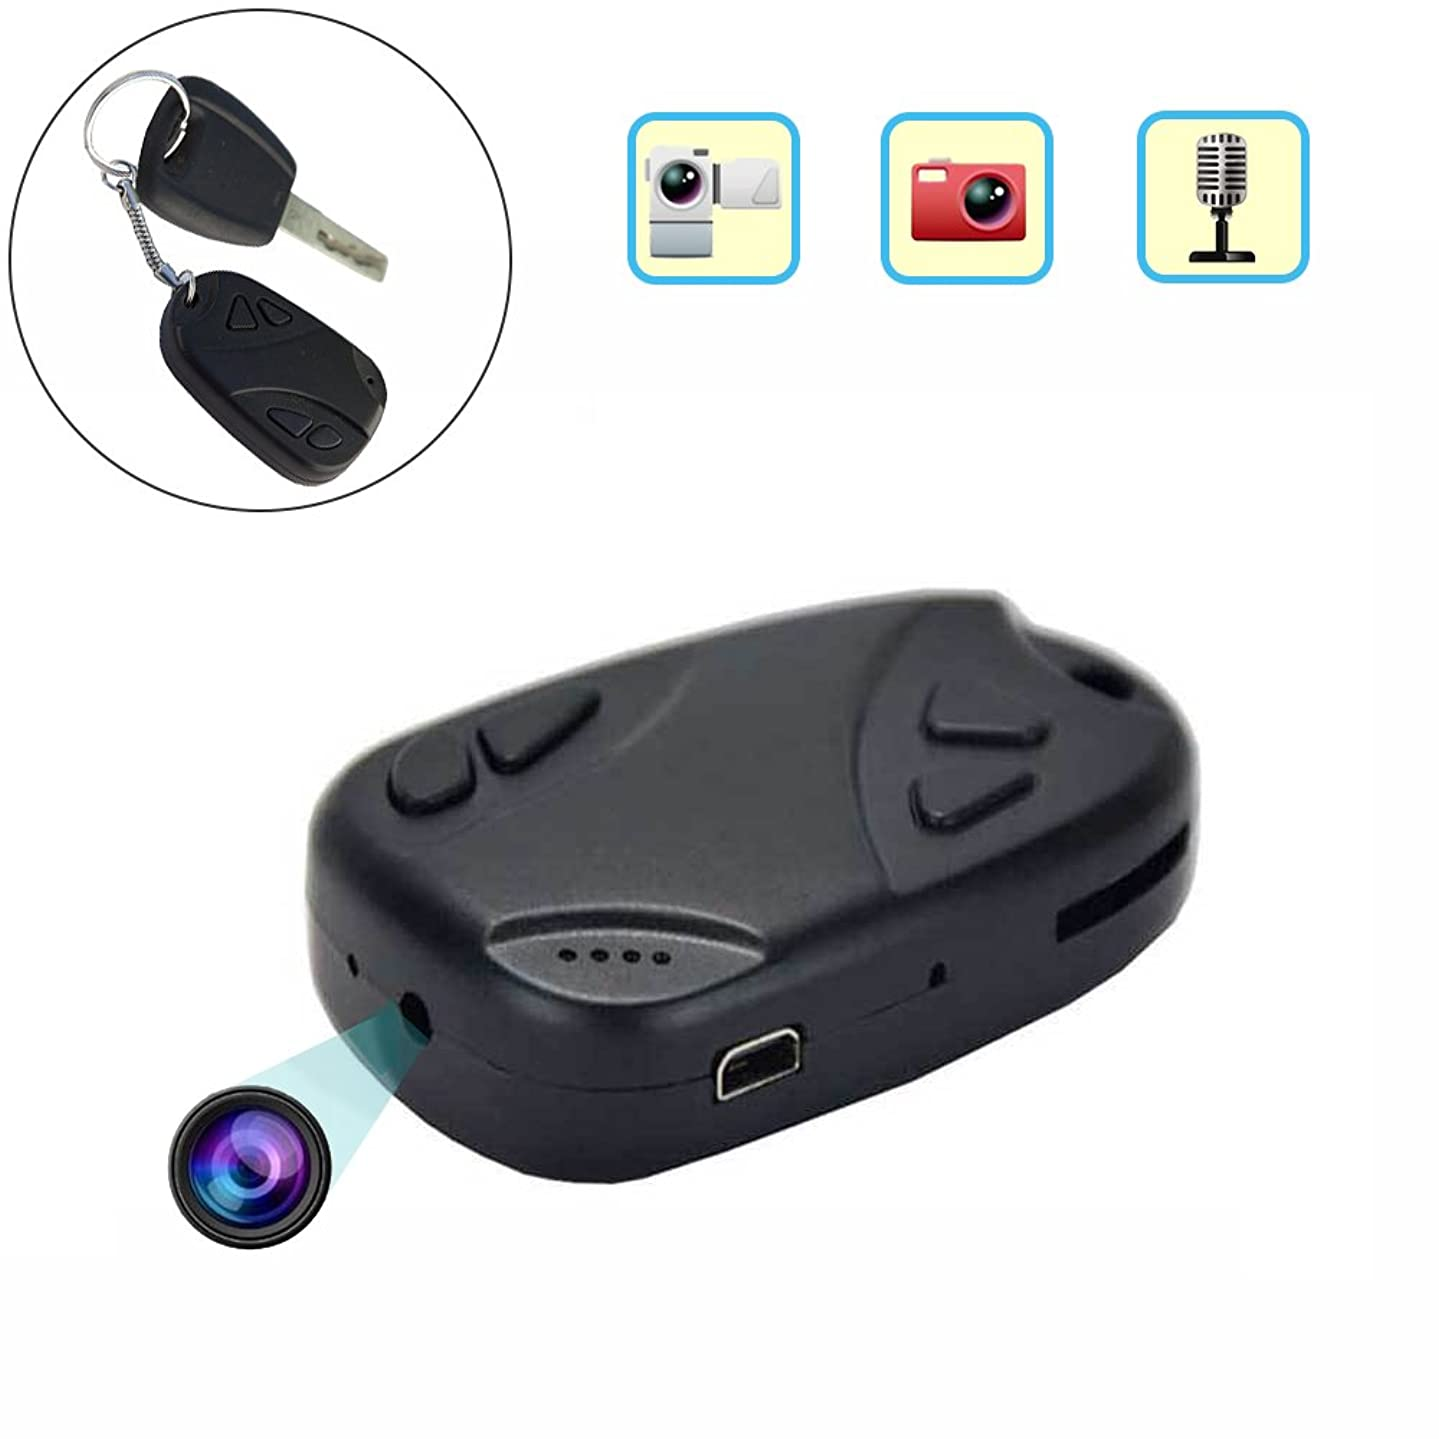 Cainda Hidden Spy Camera Keychain 480P, Portable Mini DV Cam for Recording and Noting, Micro Car Key Security Camera for Home and Office Surveillance